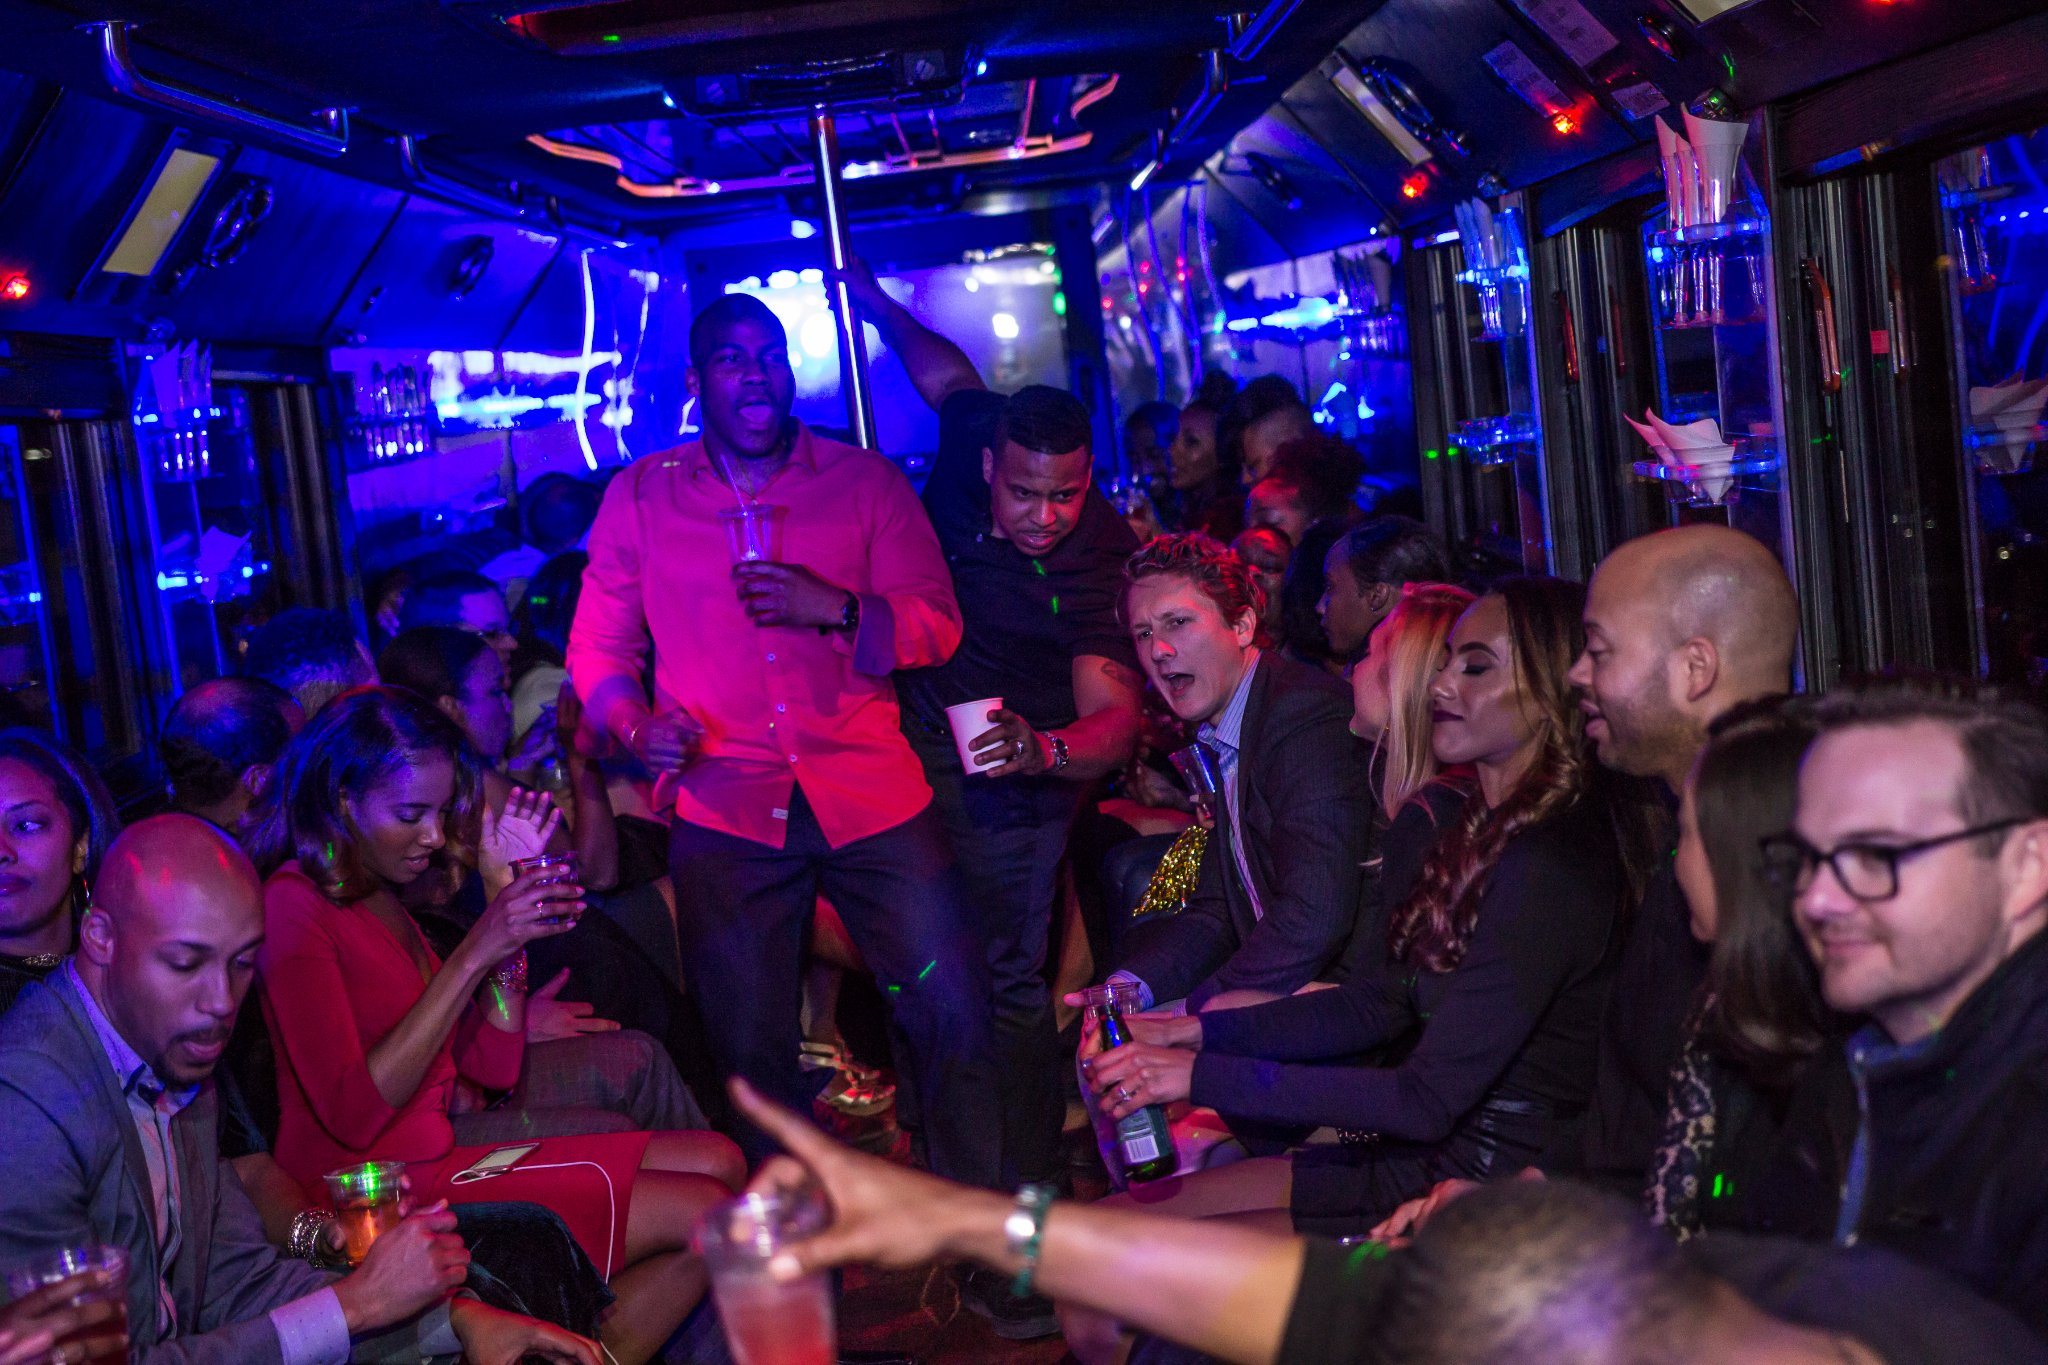 Getting Your Required Dose of Iron in a Party Bus